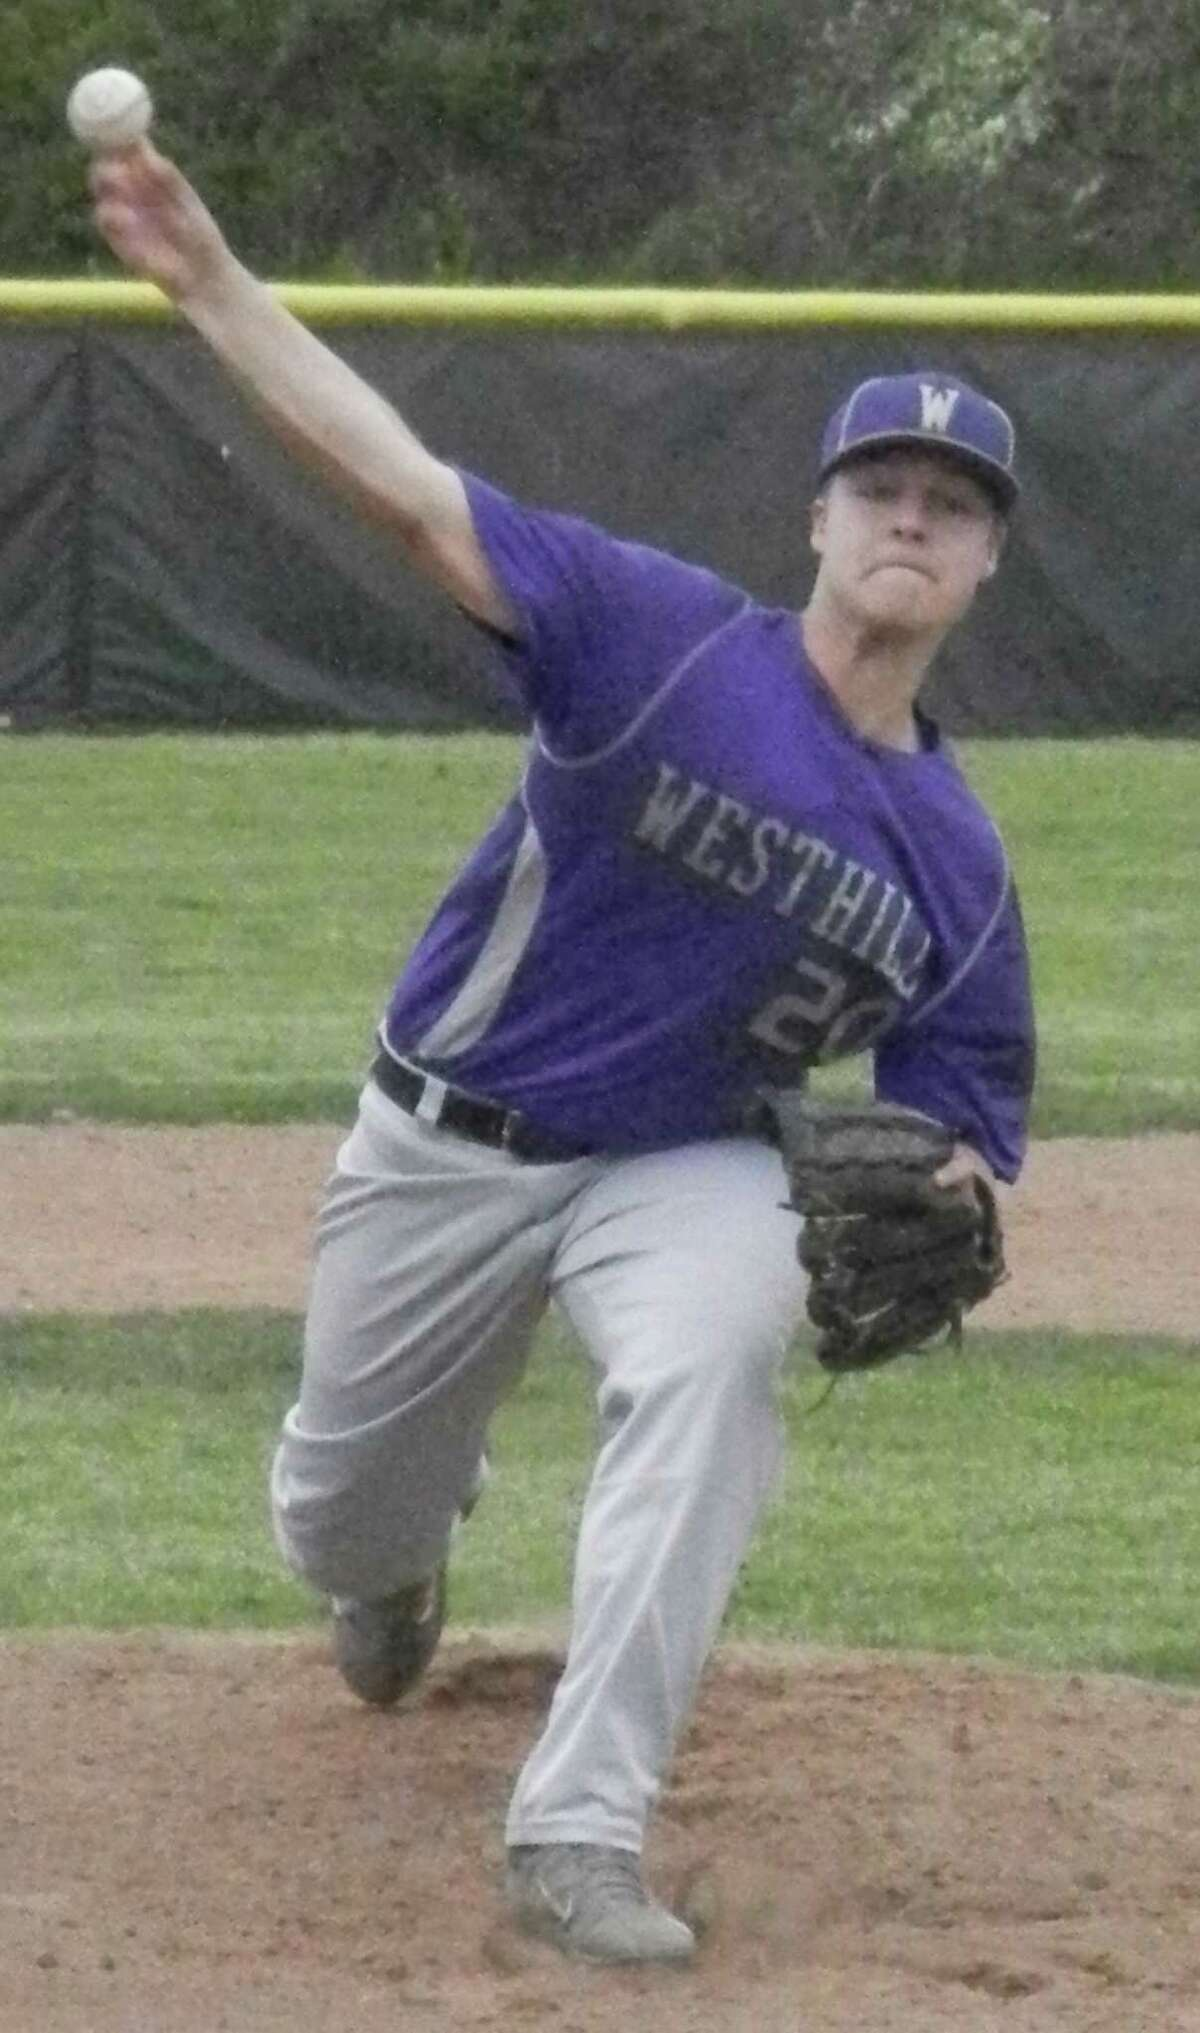 Westhill junior starting pitcher Billy Blau lets go of a pitch in the first inning on Wednesday, May 14 in an FCIAC baseball game against Ludlowe at Kiwanis Field in Fairfield. Blau pitched into the fifth inning as the Falcons erased a 2-0 deficit to beat the Vikings 4-3.